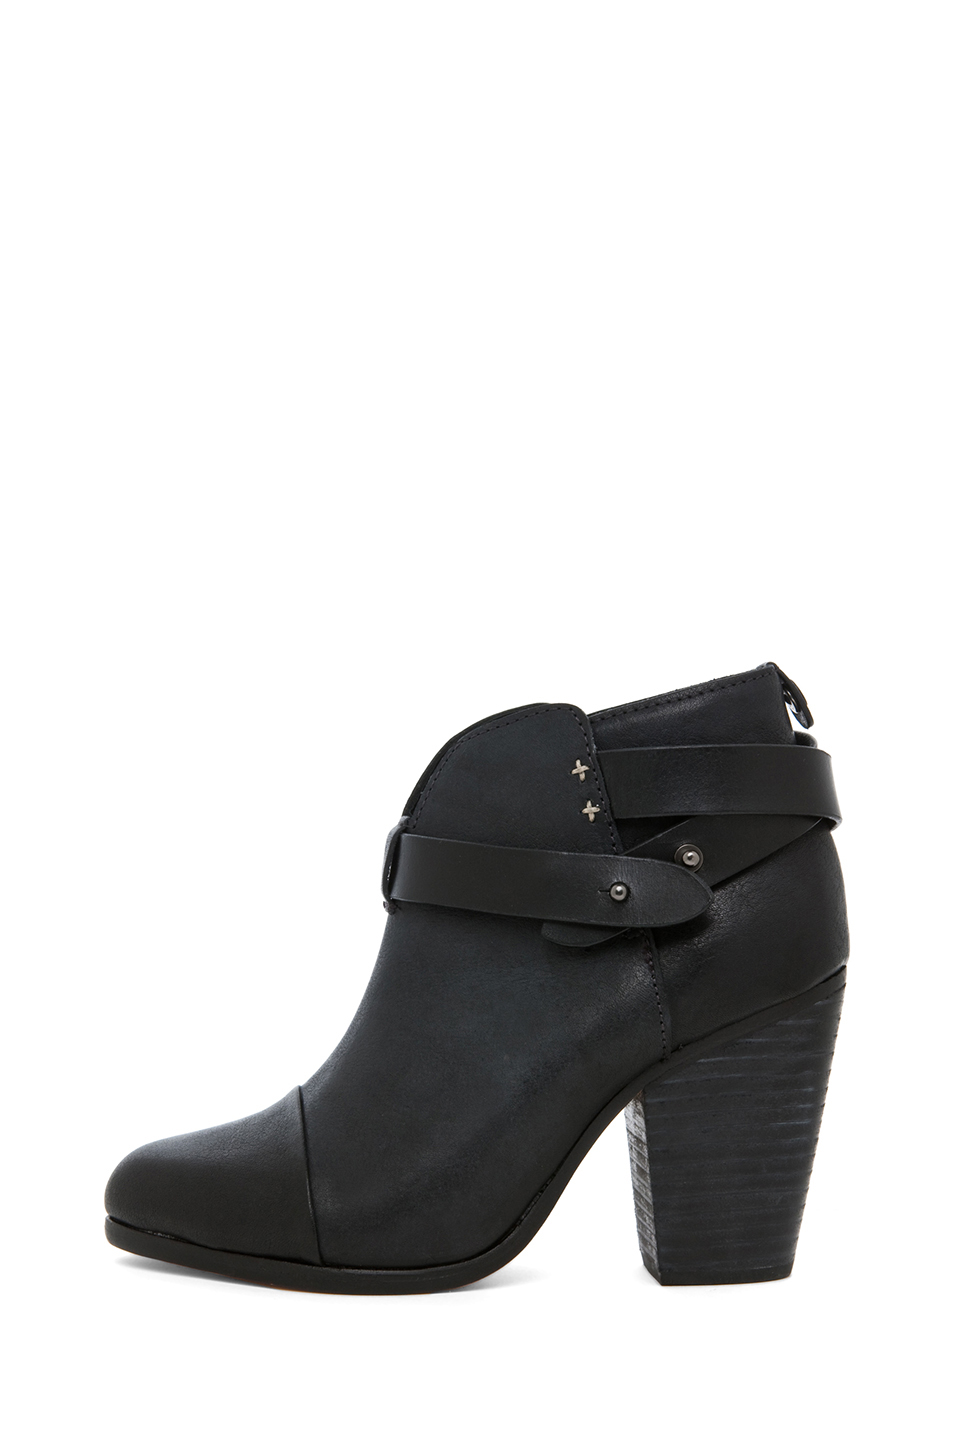 rag & bone|Harrow Leather Boot in Black